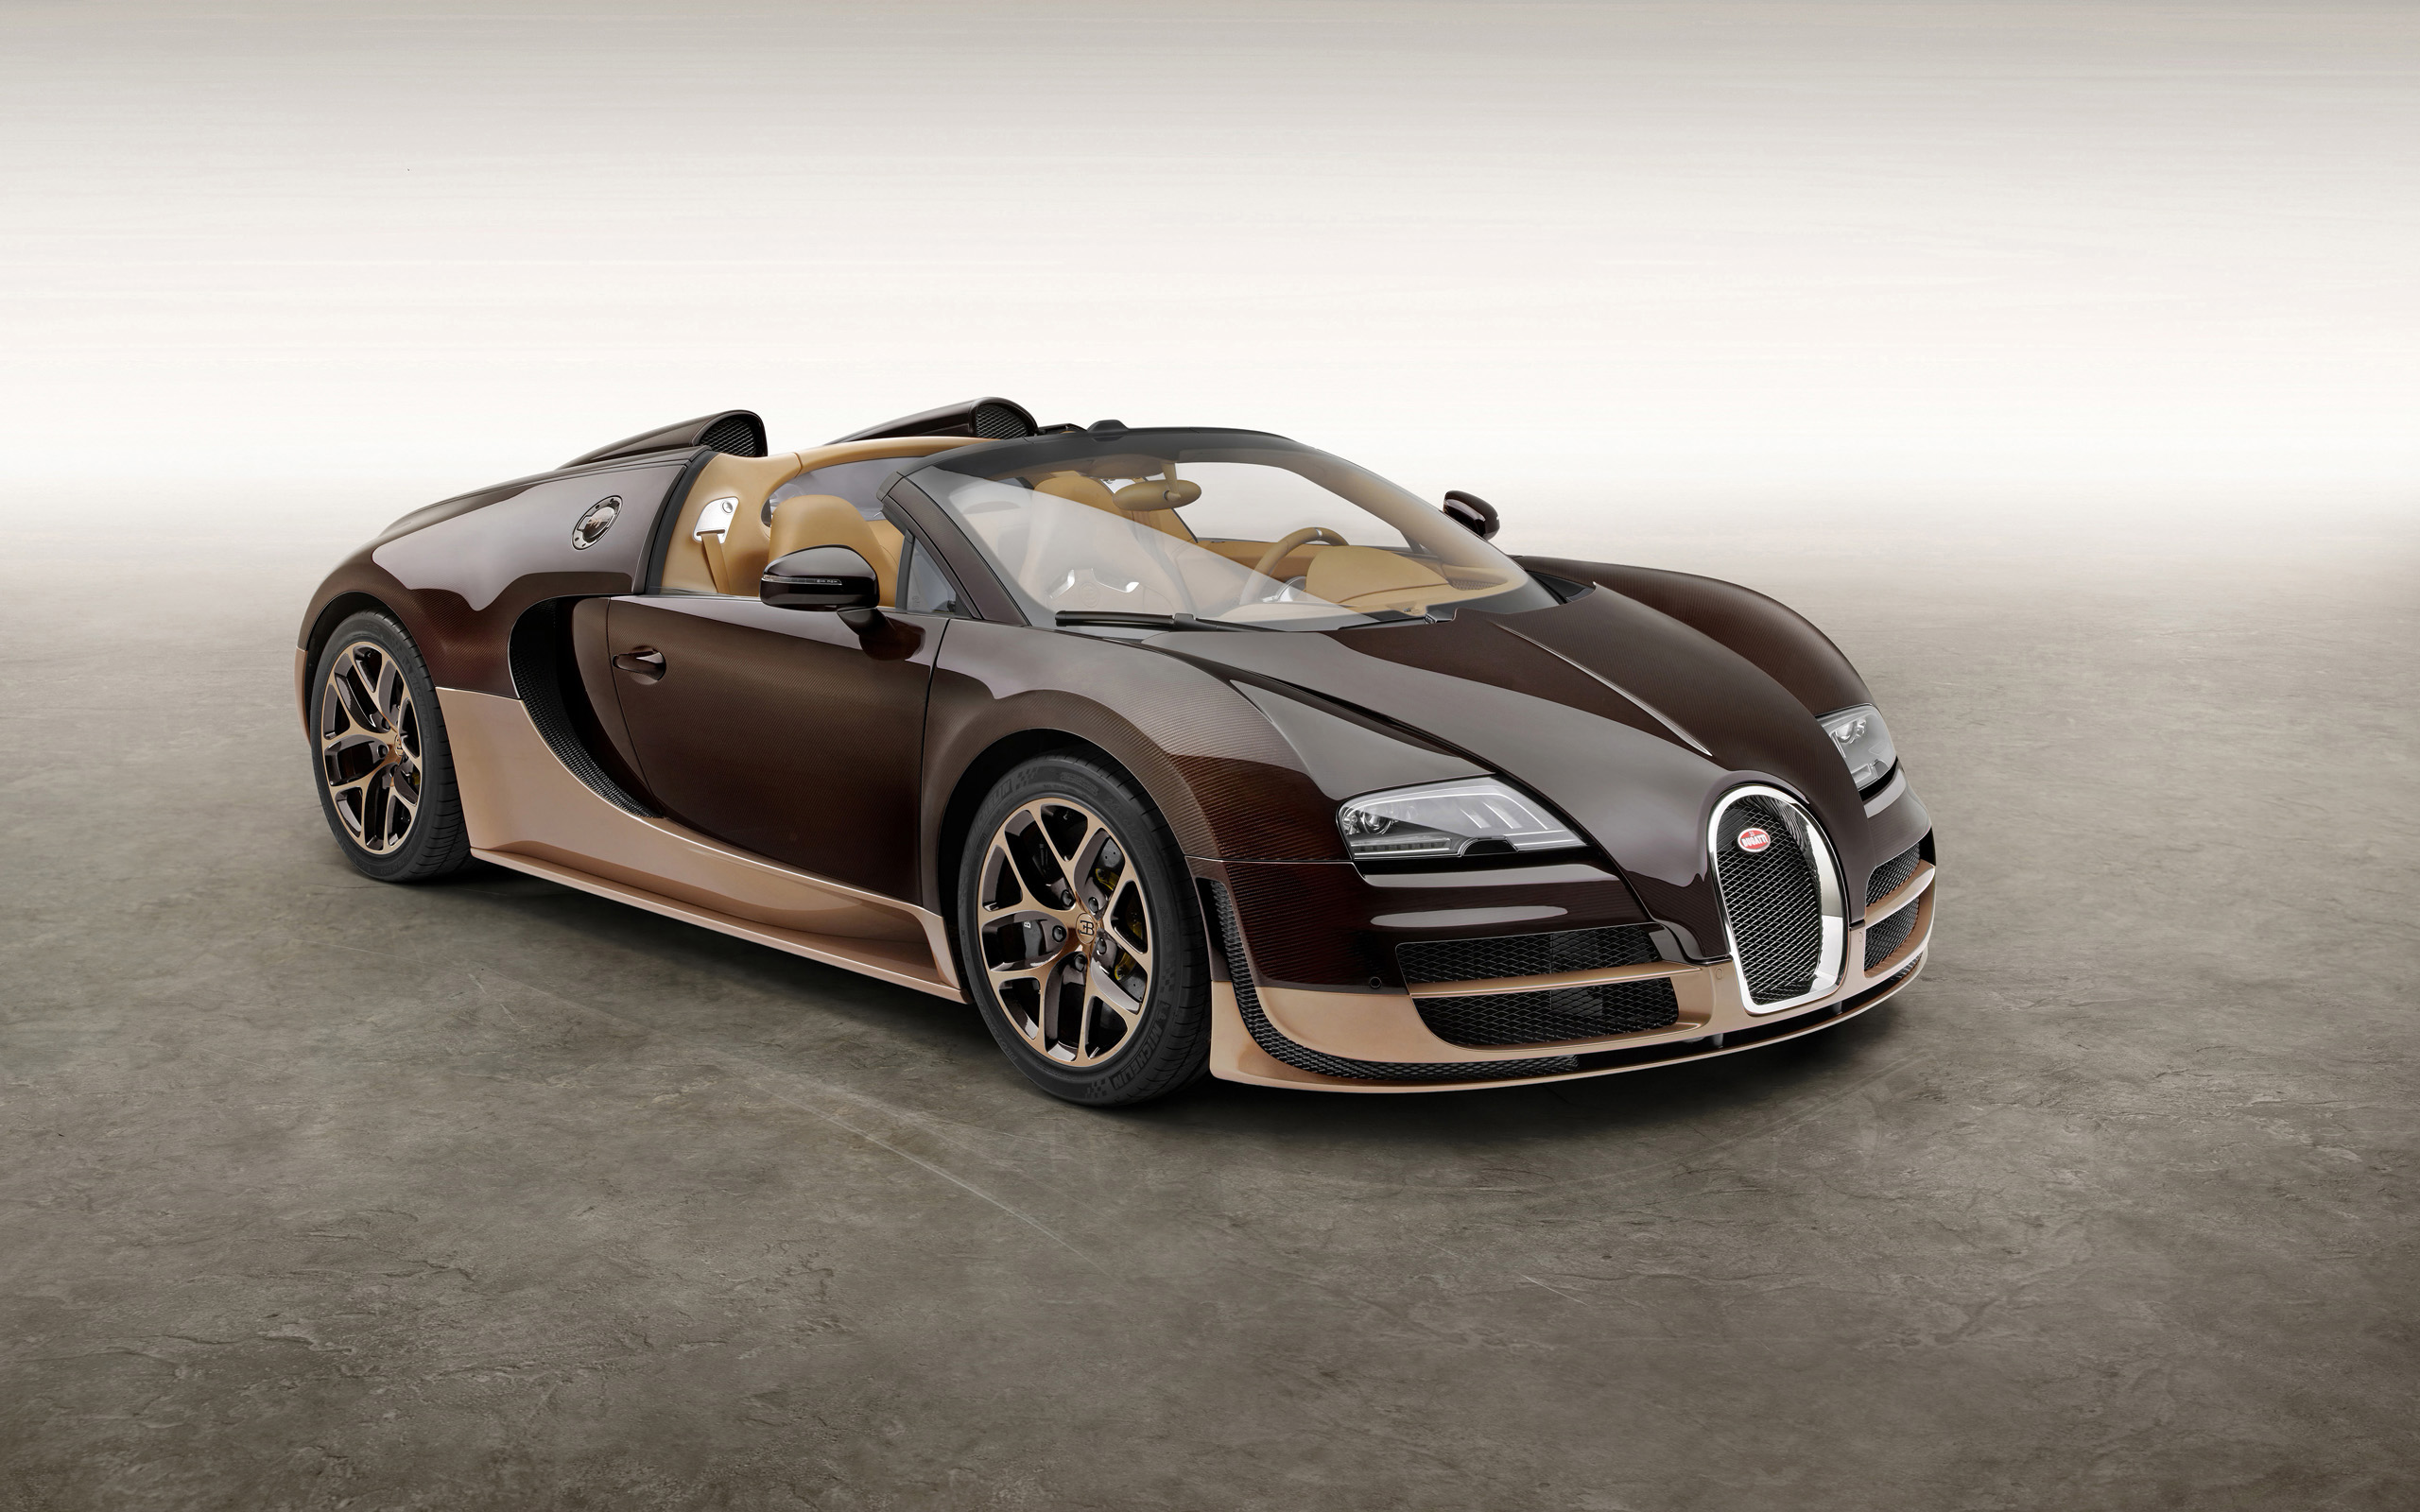 2014 bugatti veyron grand sport vitesse legend rembrandt. Black Bedroom Furniture Sets. Home Design Ideas